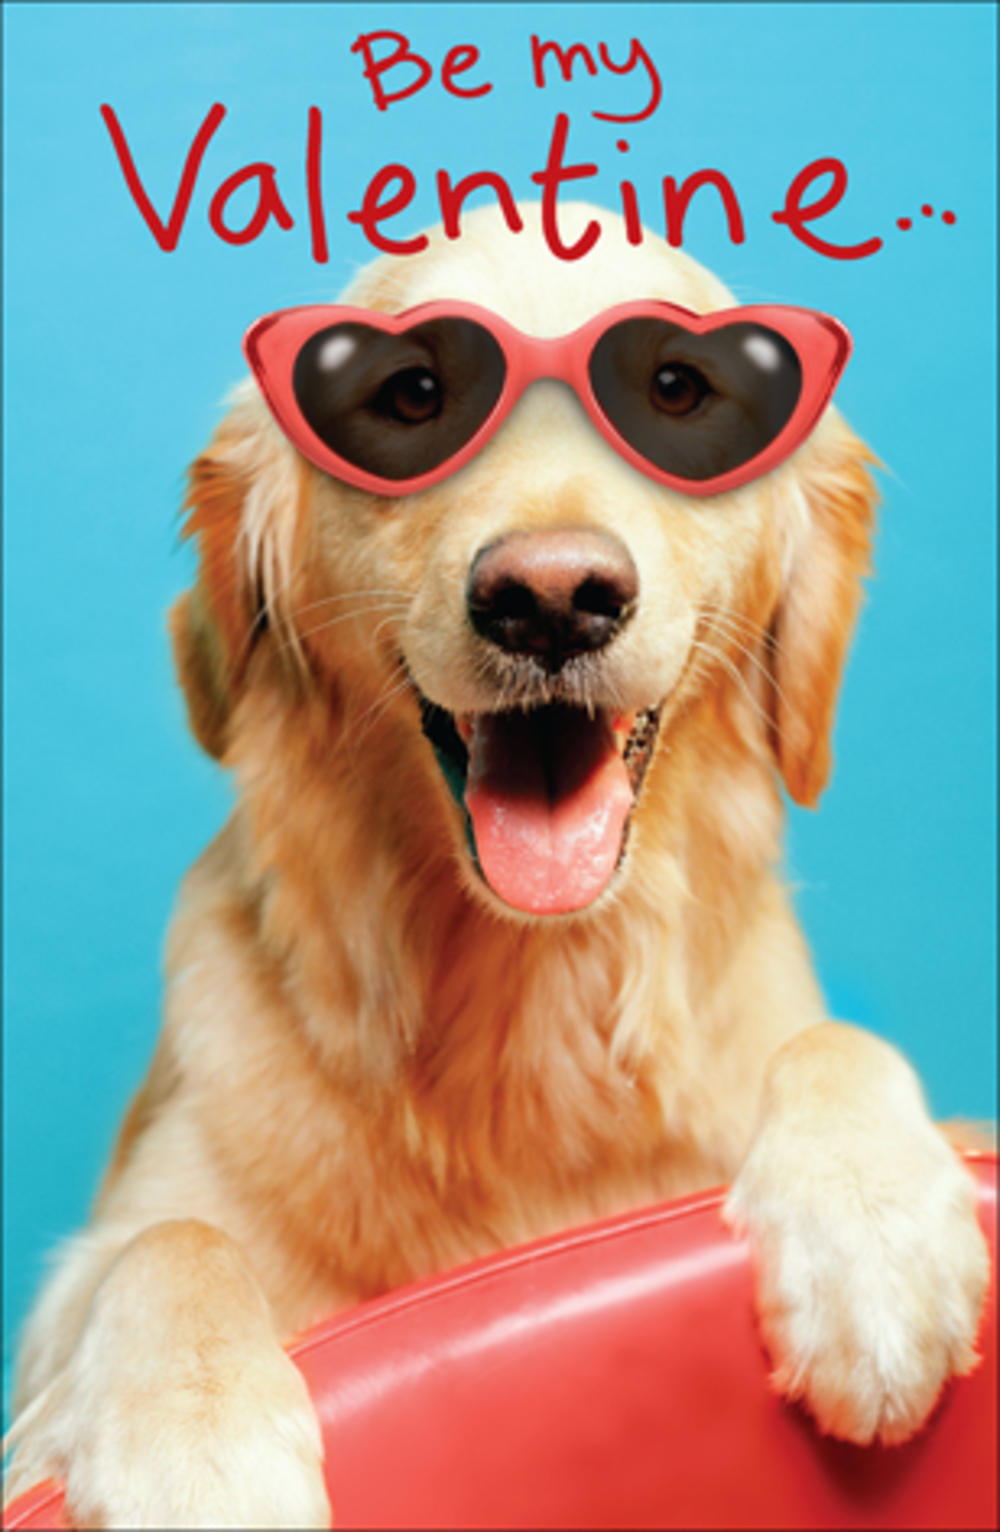 Dog Wearing Sunglasses Valentine's Day Card